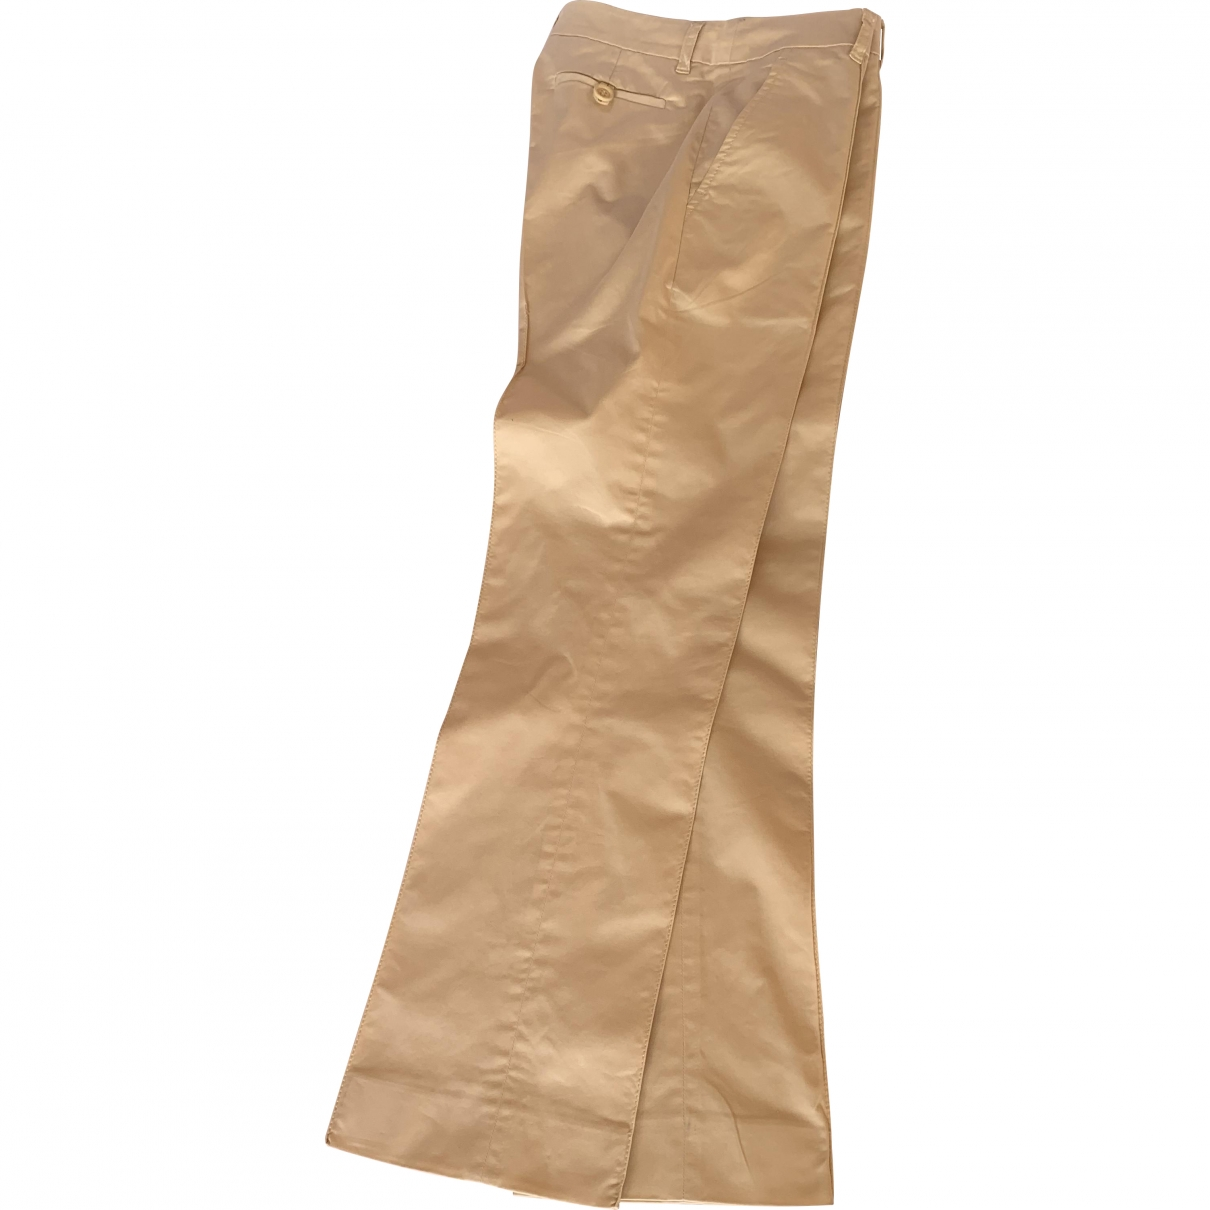 Moschino Cheap And Chic \N Beige Cotton Trousers for Women 36 FR